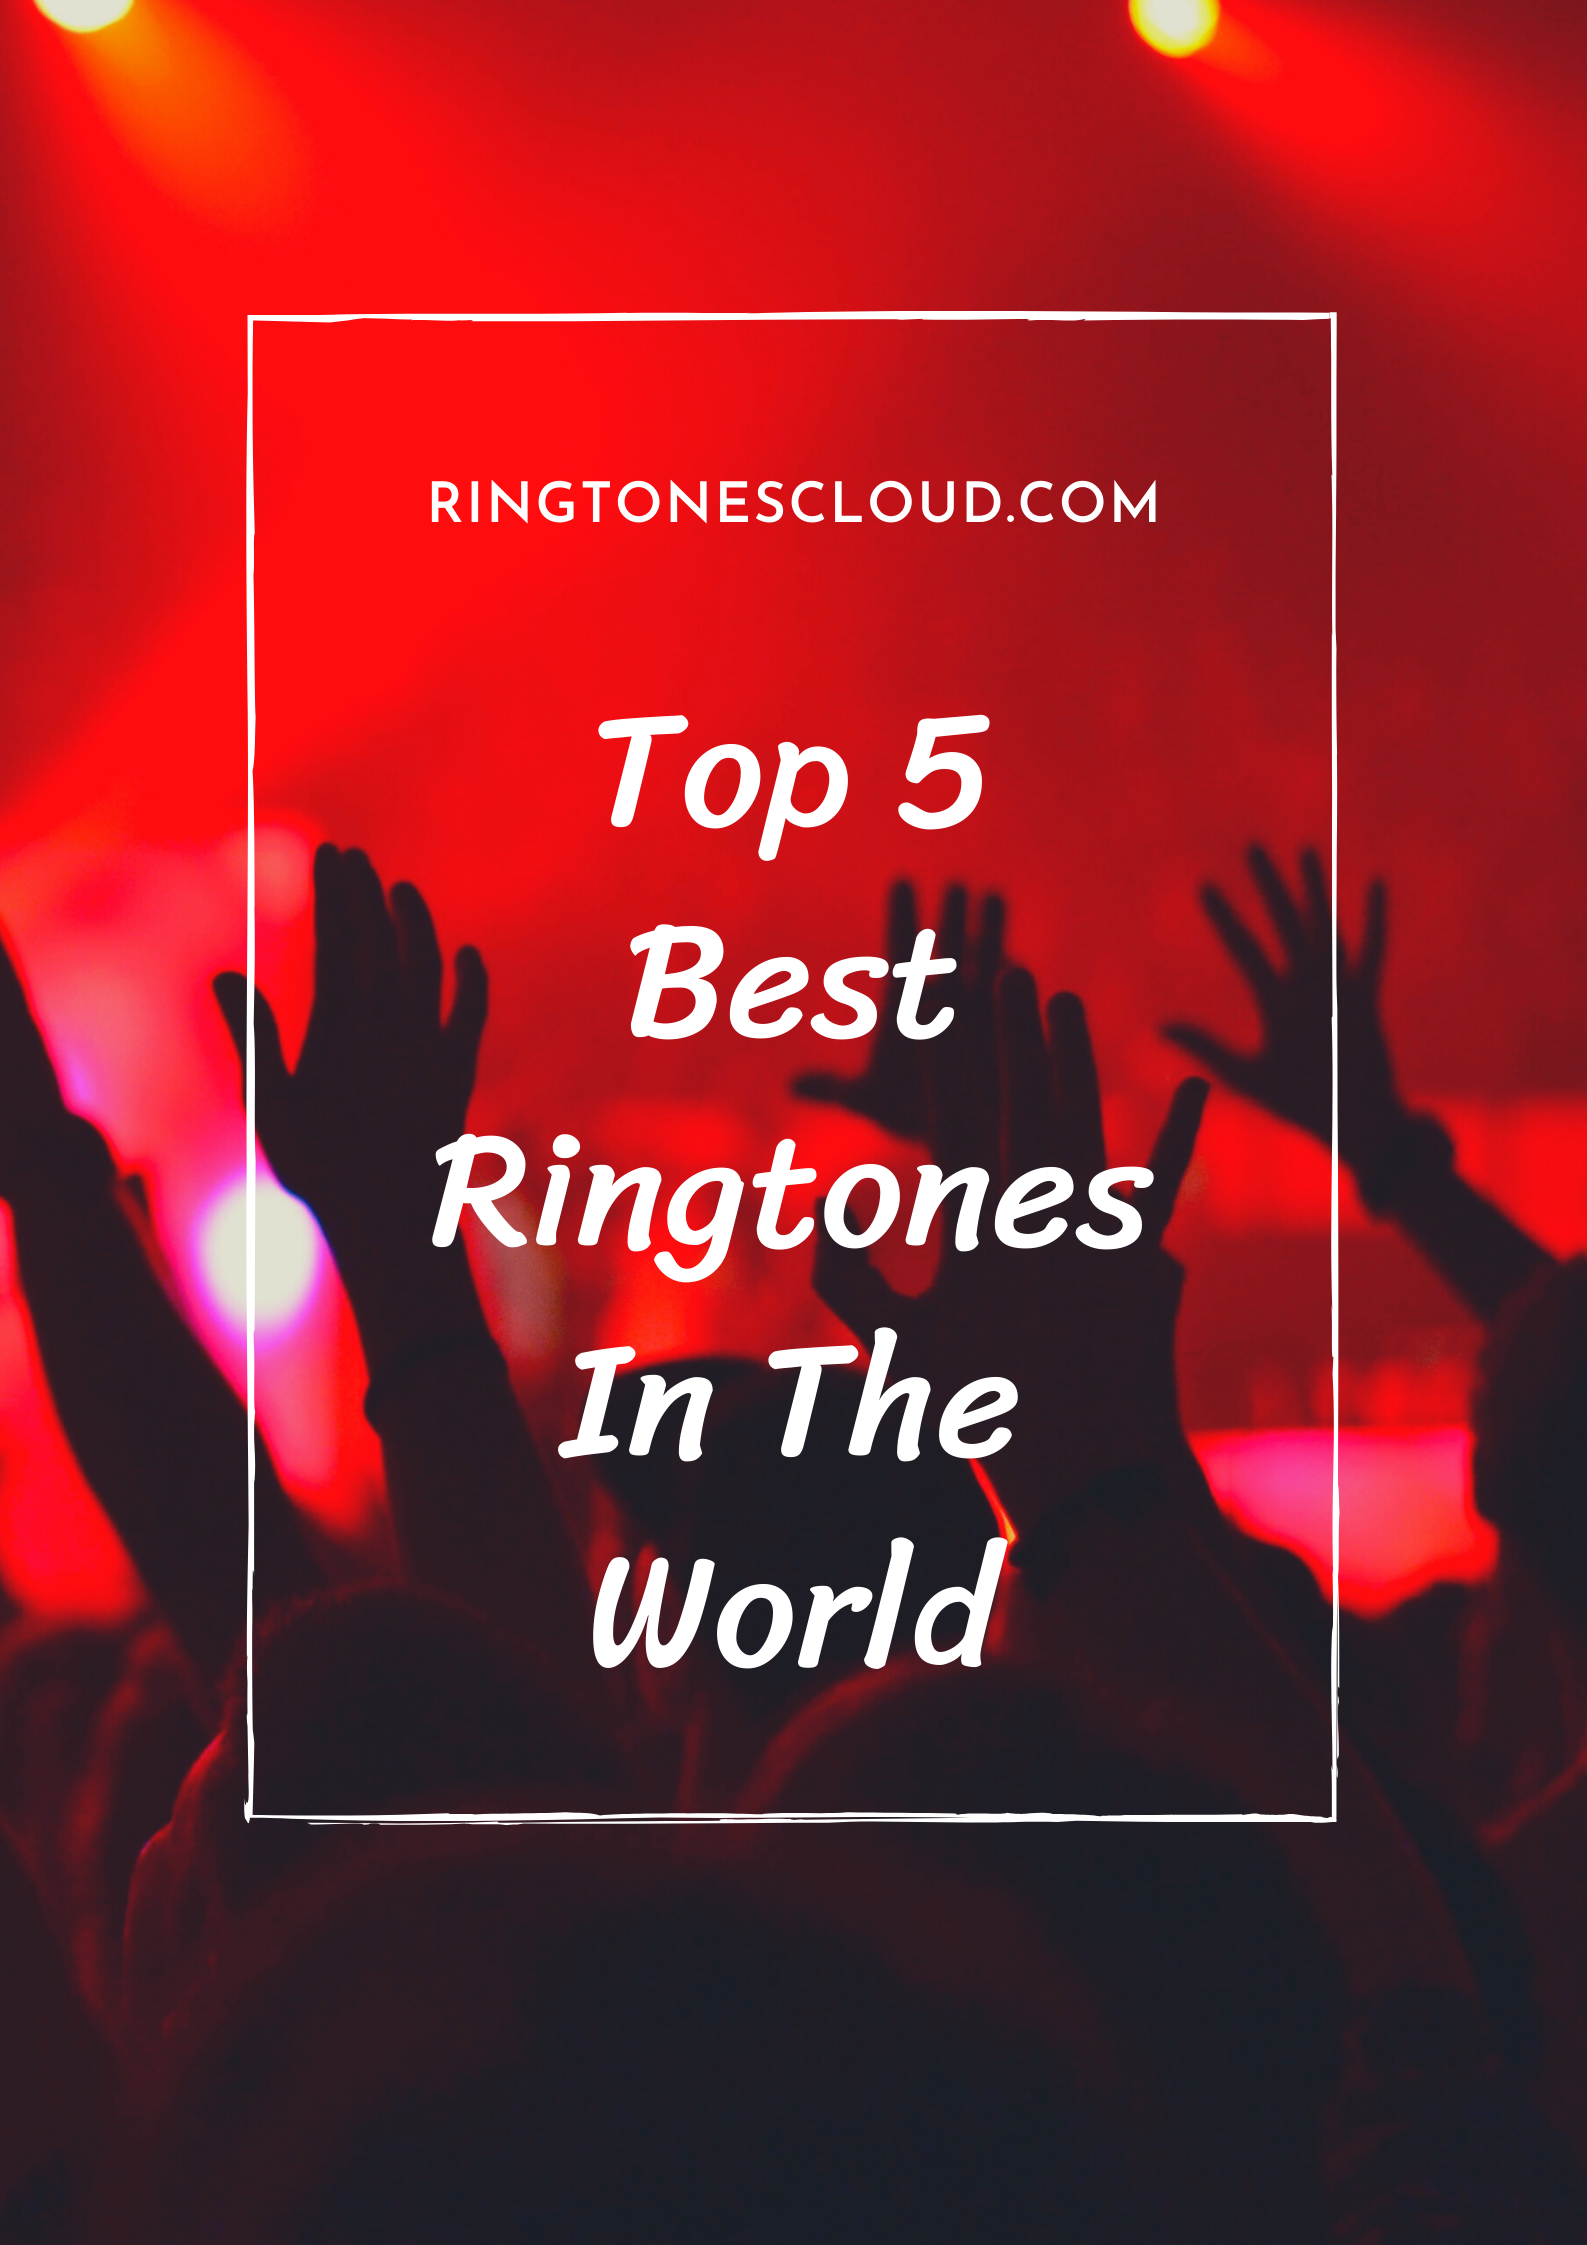 Top 5 Best Ringtones In The World In 2020 Best Ringtones Ringtones Music Ringtones